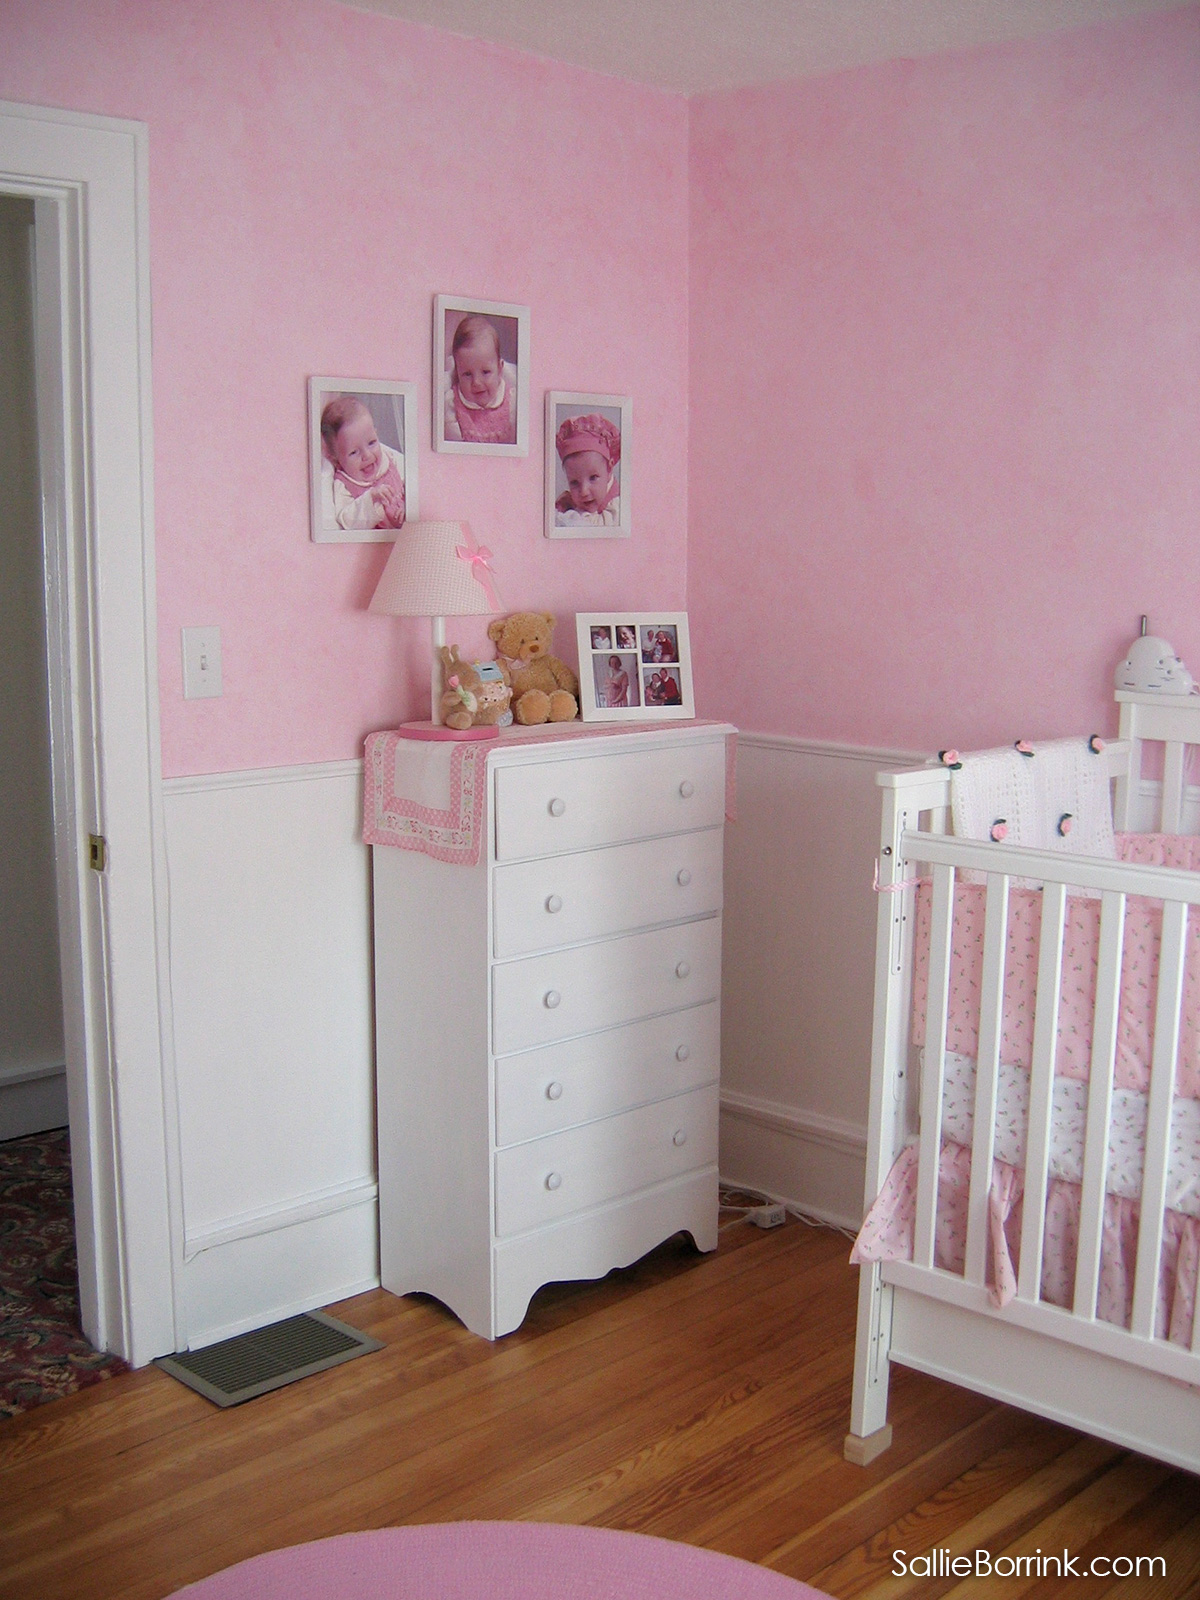 White dresser in baby nursery with pink walls, beadboard, chair rail, white baby bed, pink rug and wood floors